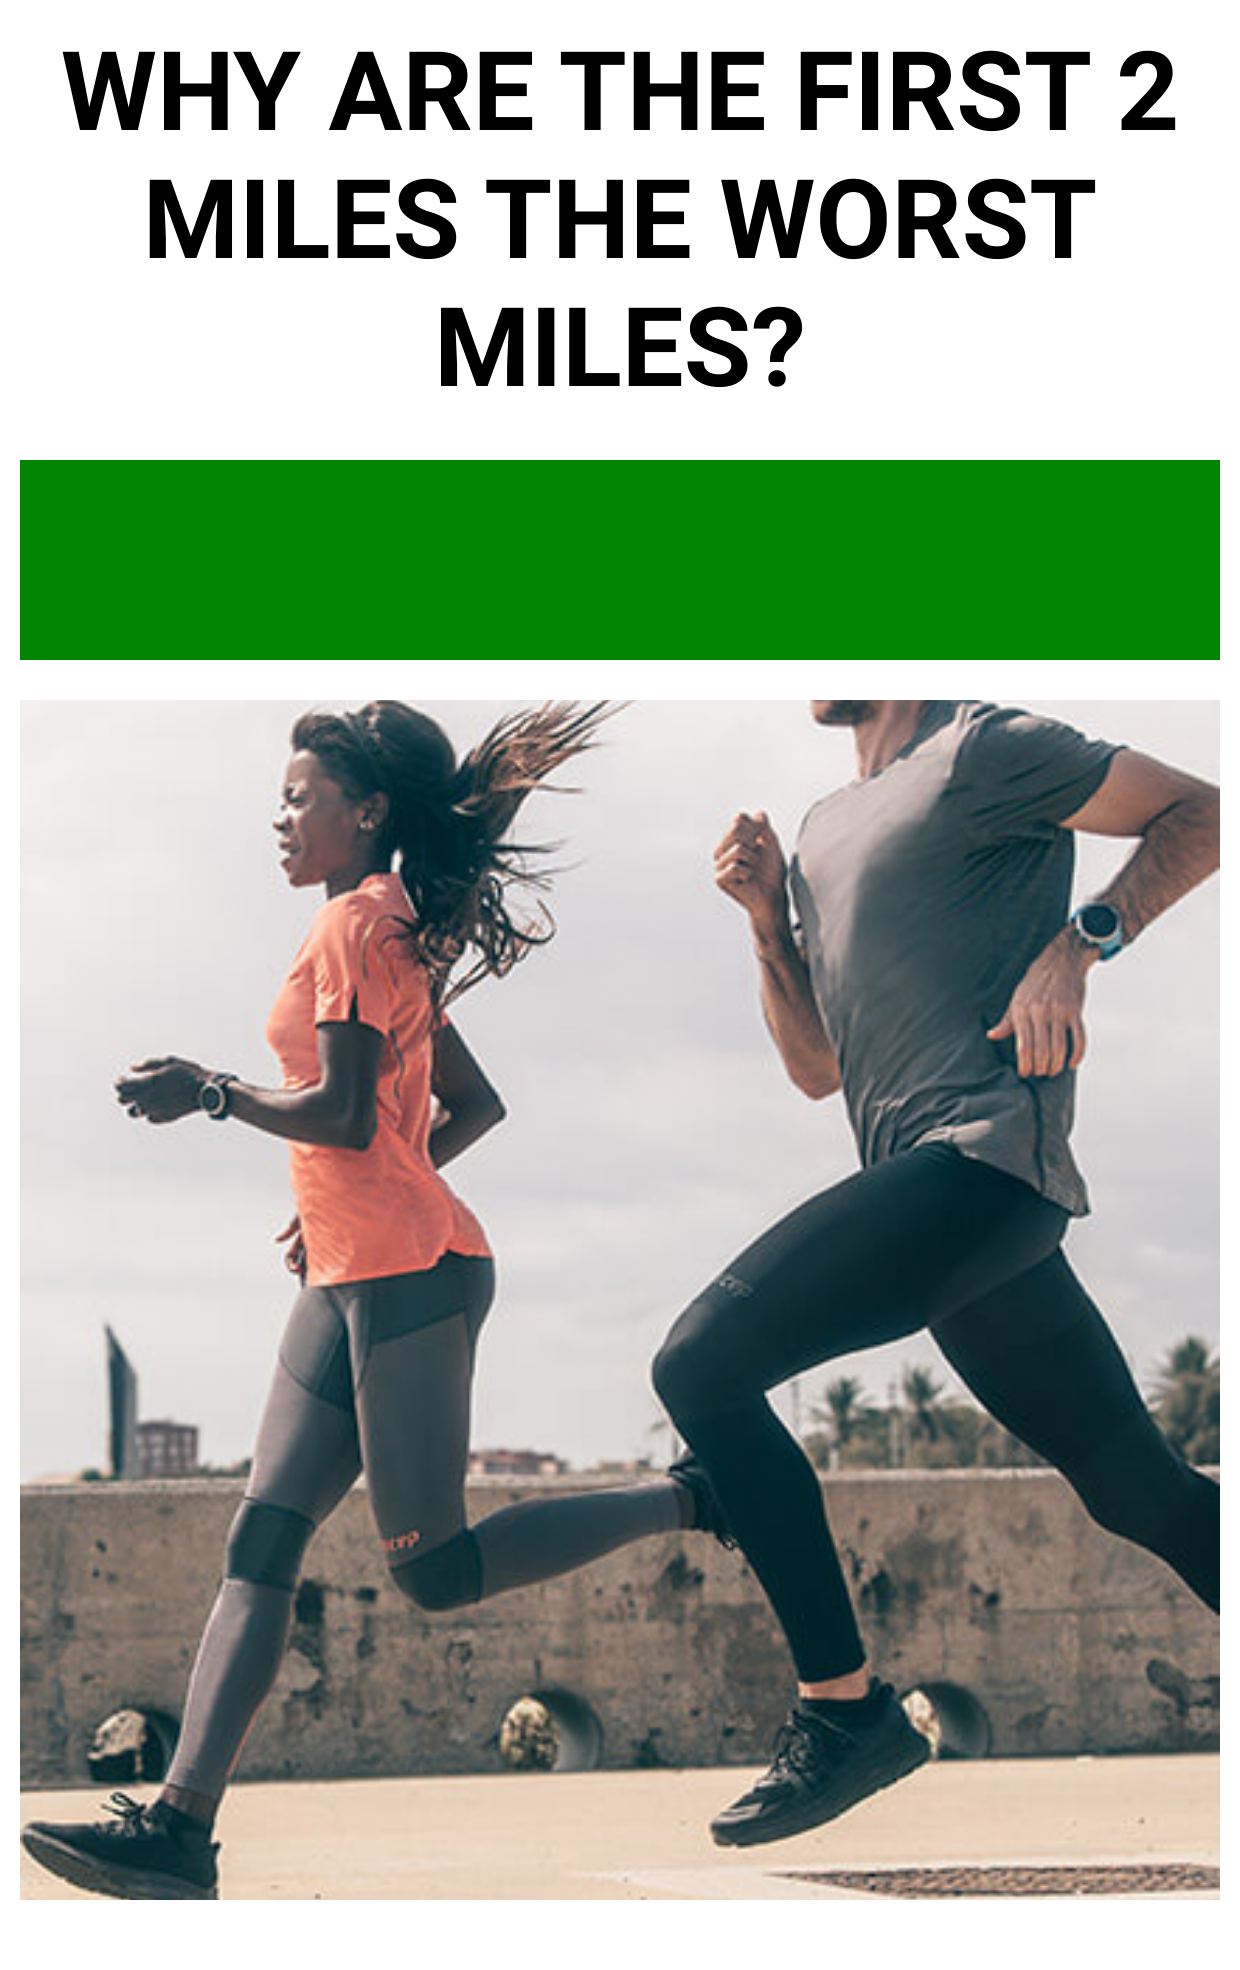 Why Are The First 2 Miles the Worst Miles?